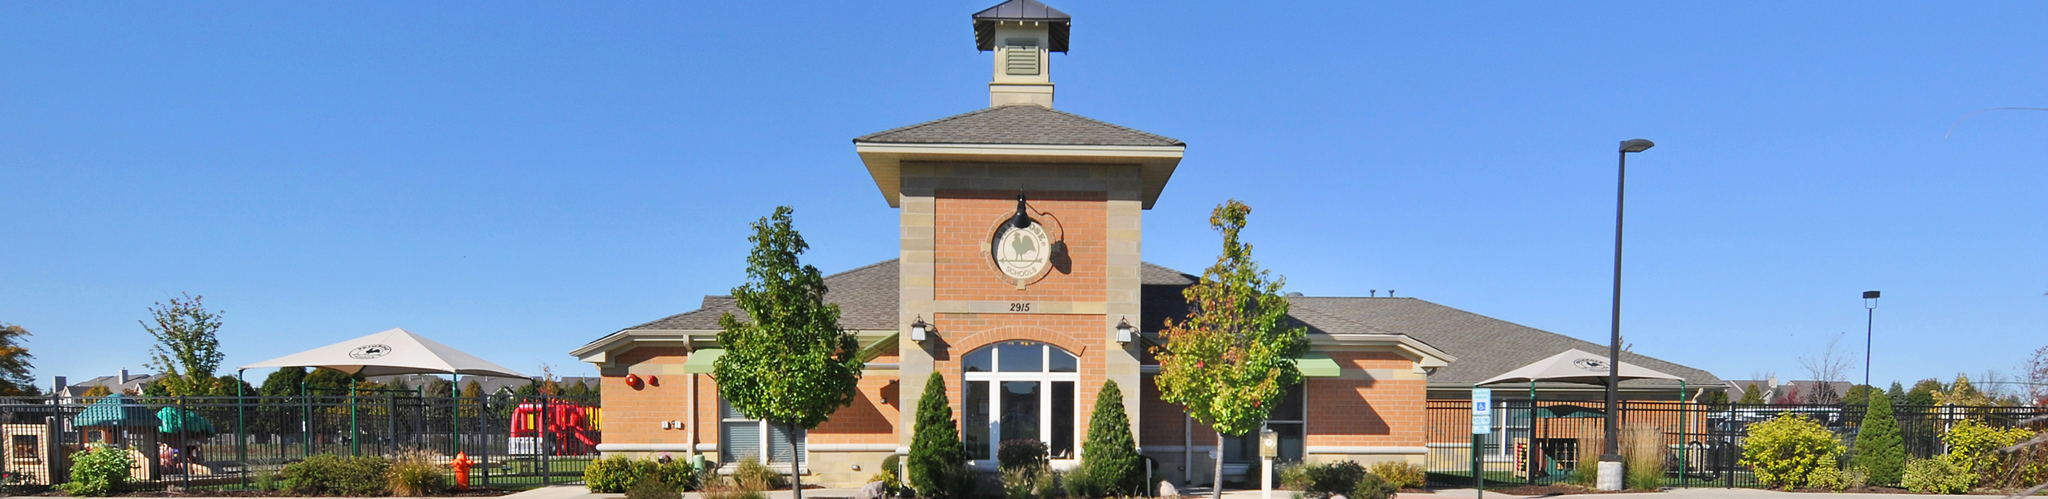 Exterior of a Primrose School at Naperville Crossings